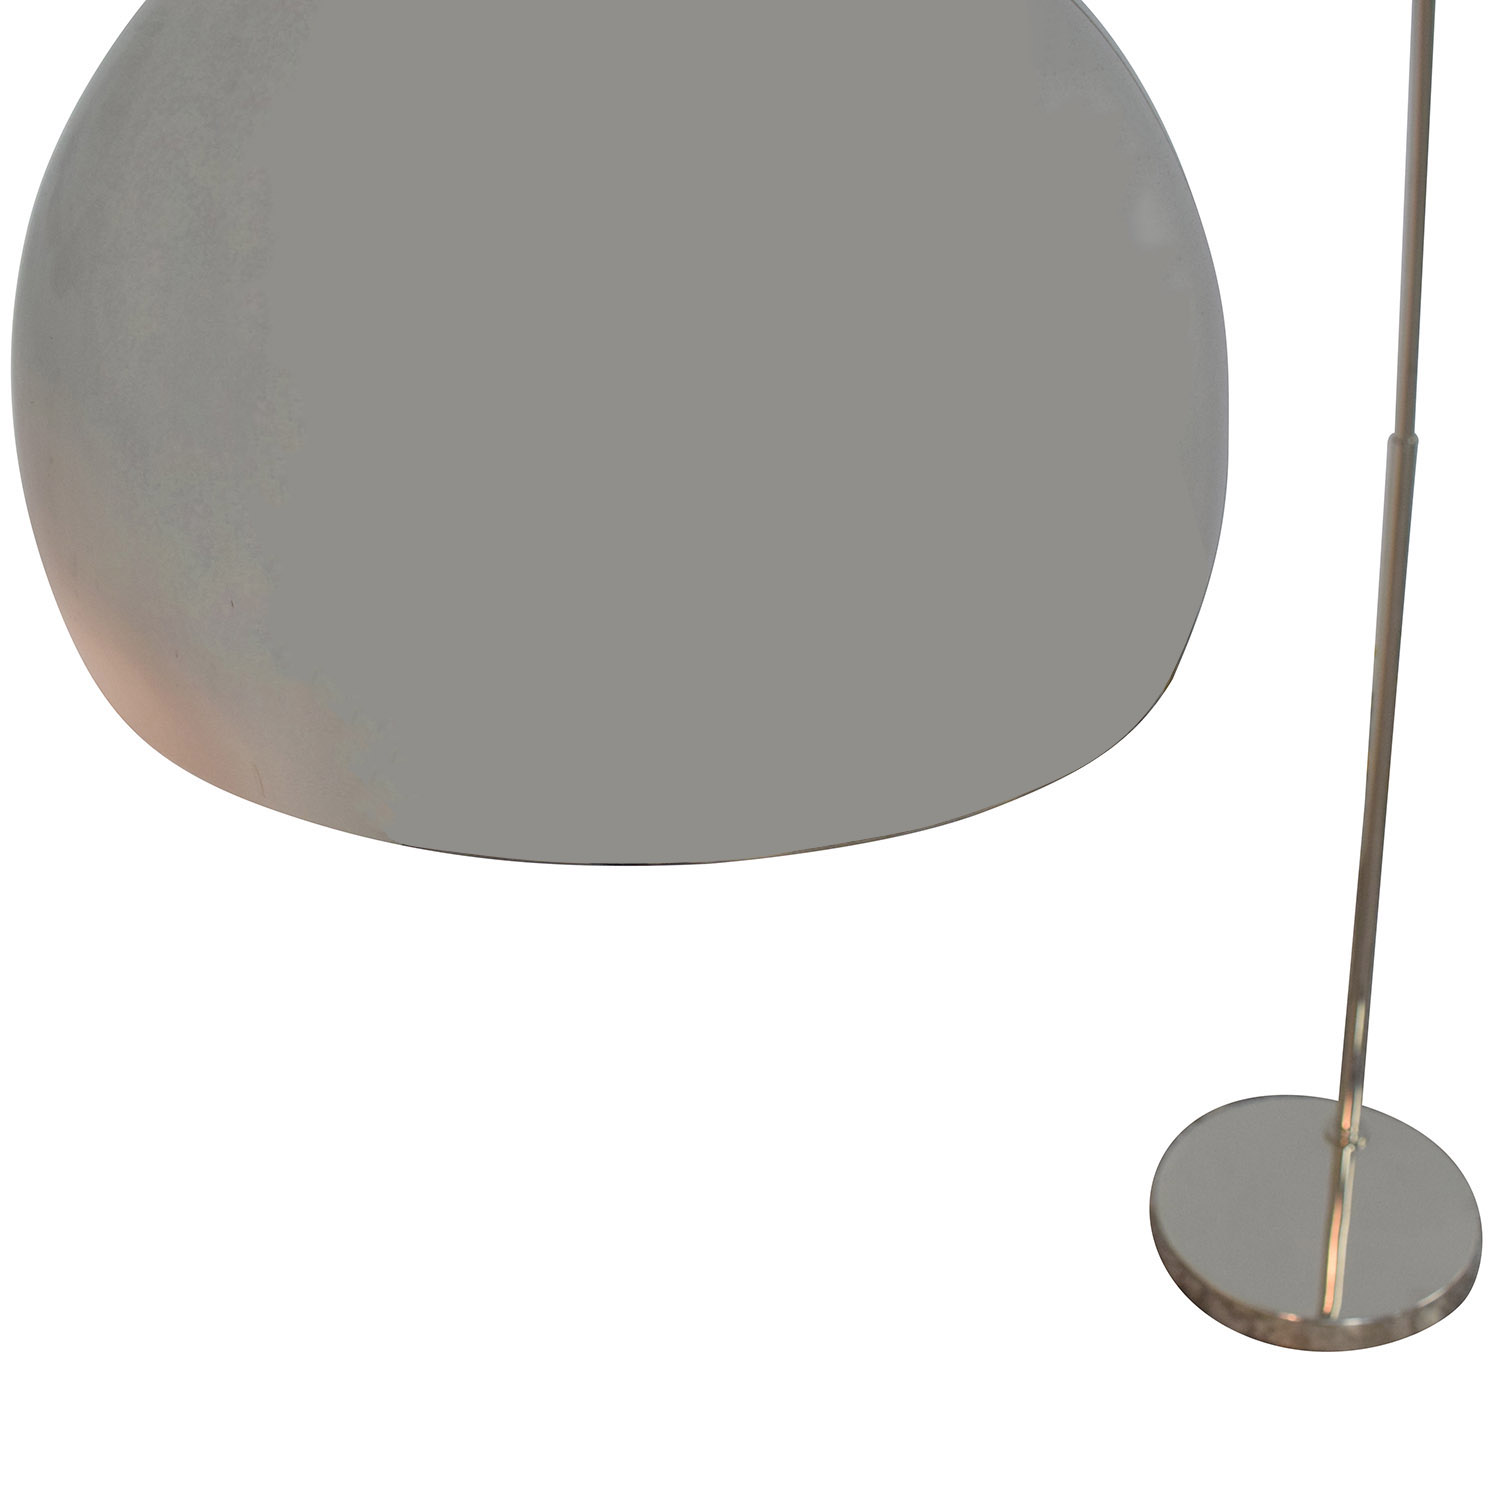 West Elm West Elm Overarching Metal Shade Floor Lamp coupon